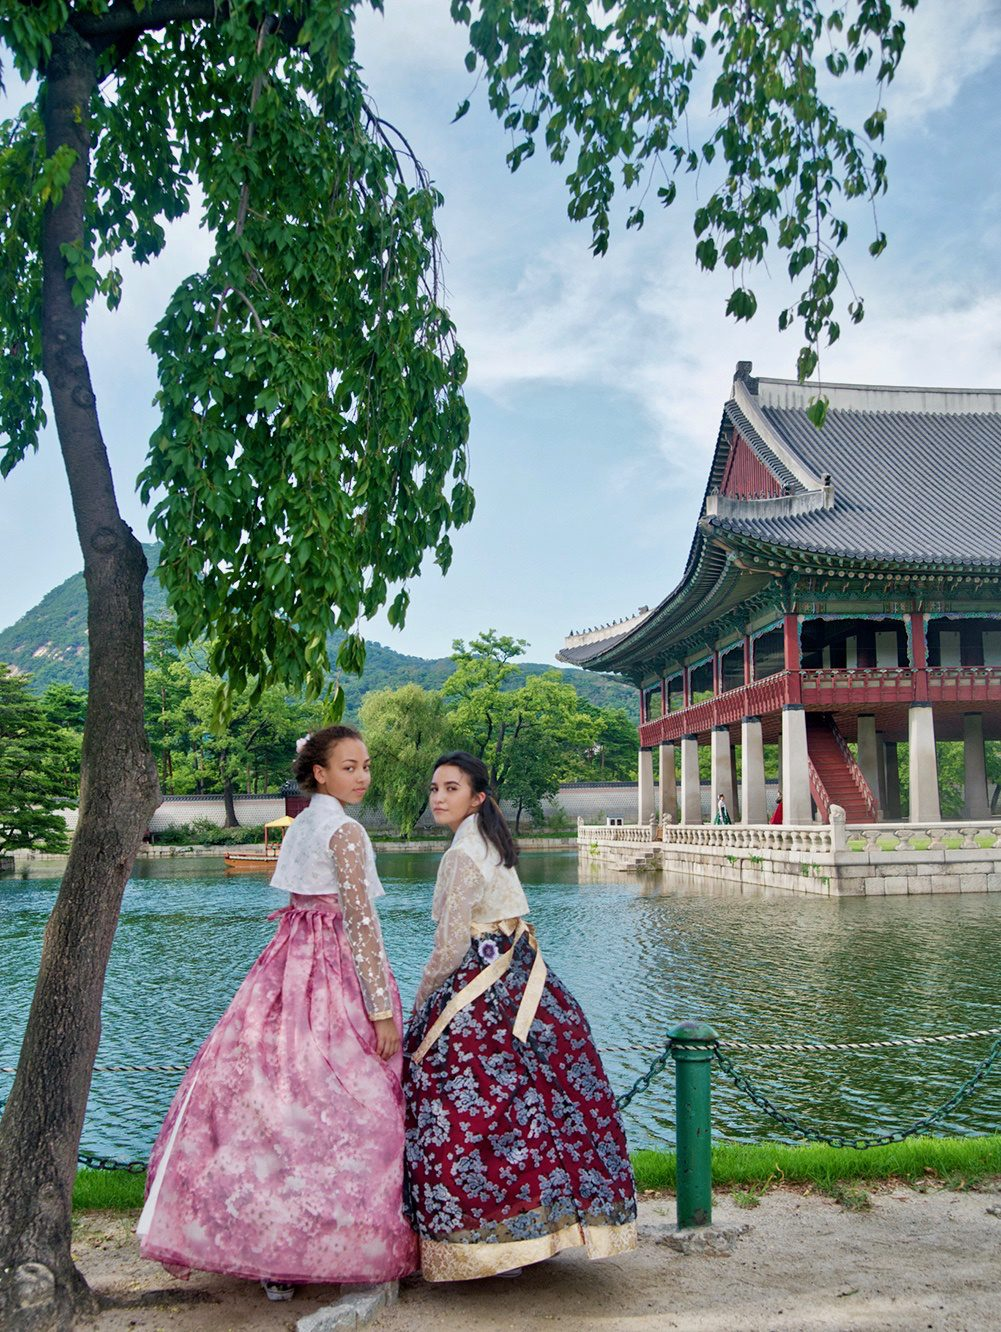 Hanbok dress in Seoul, South Korea. Family travel expert tips and multicultural education resources and books from a woman traveling the world with her kids and active duty military husband.